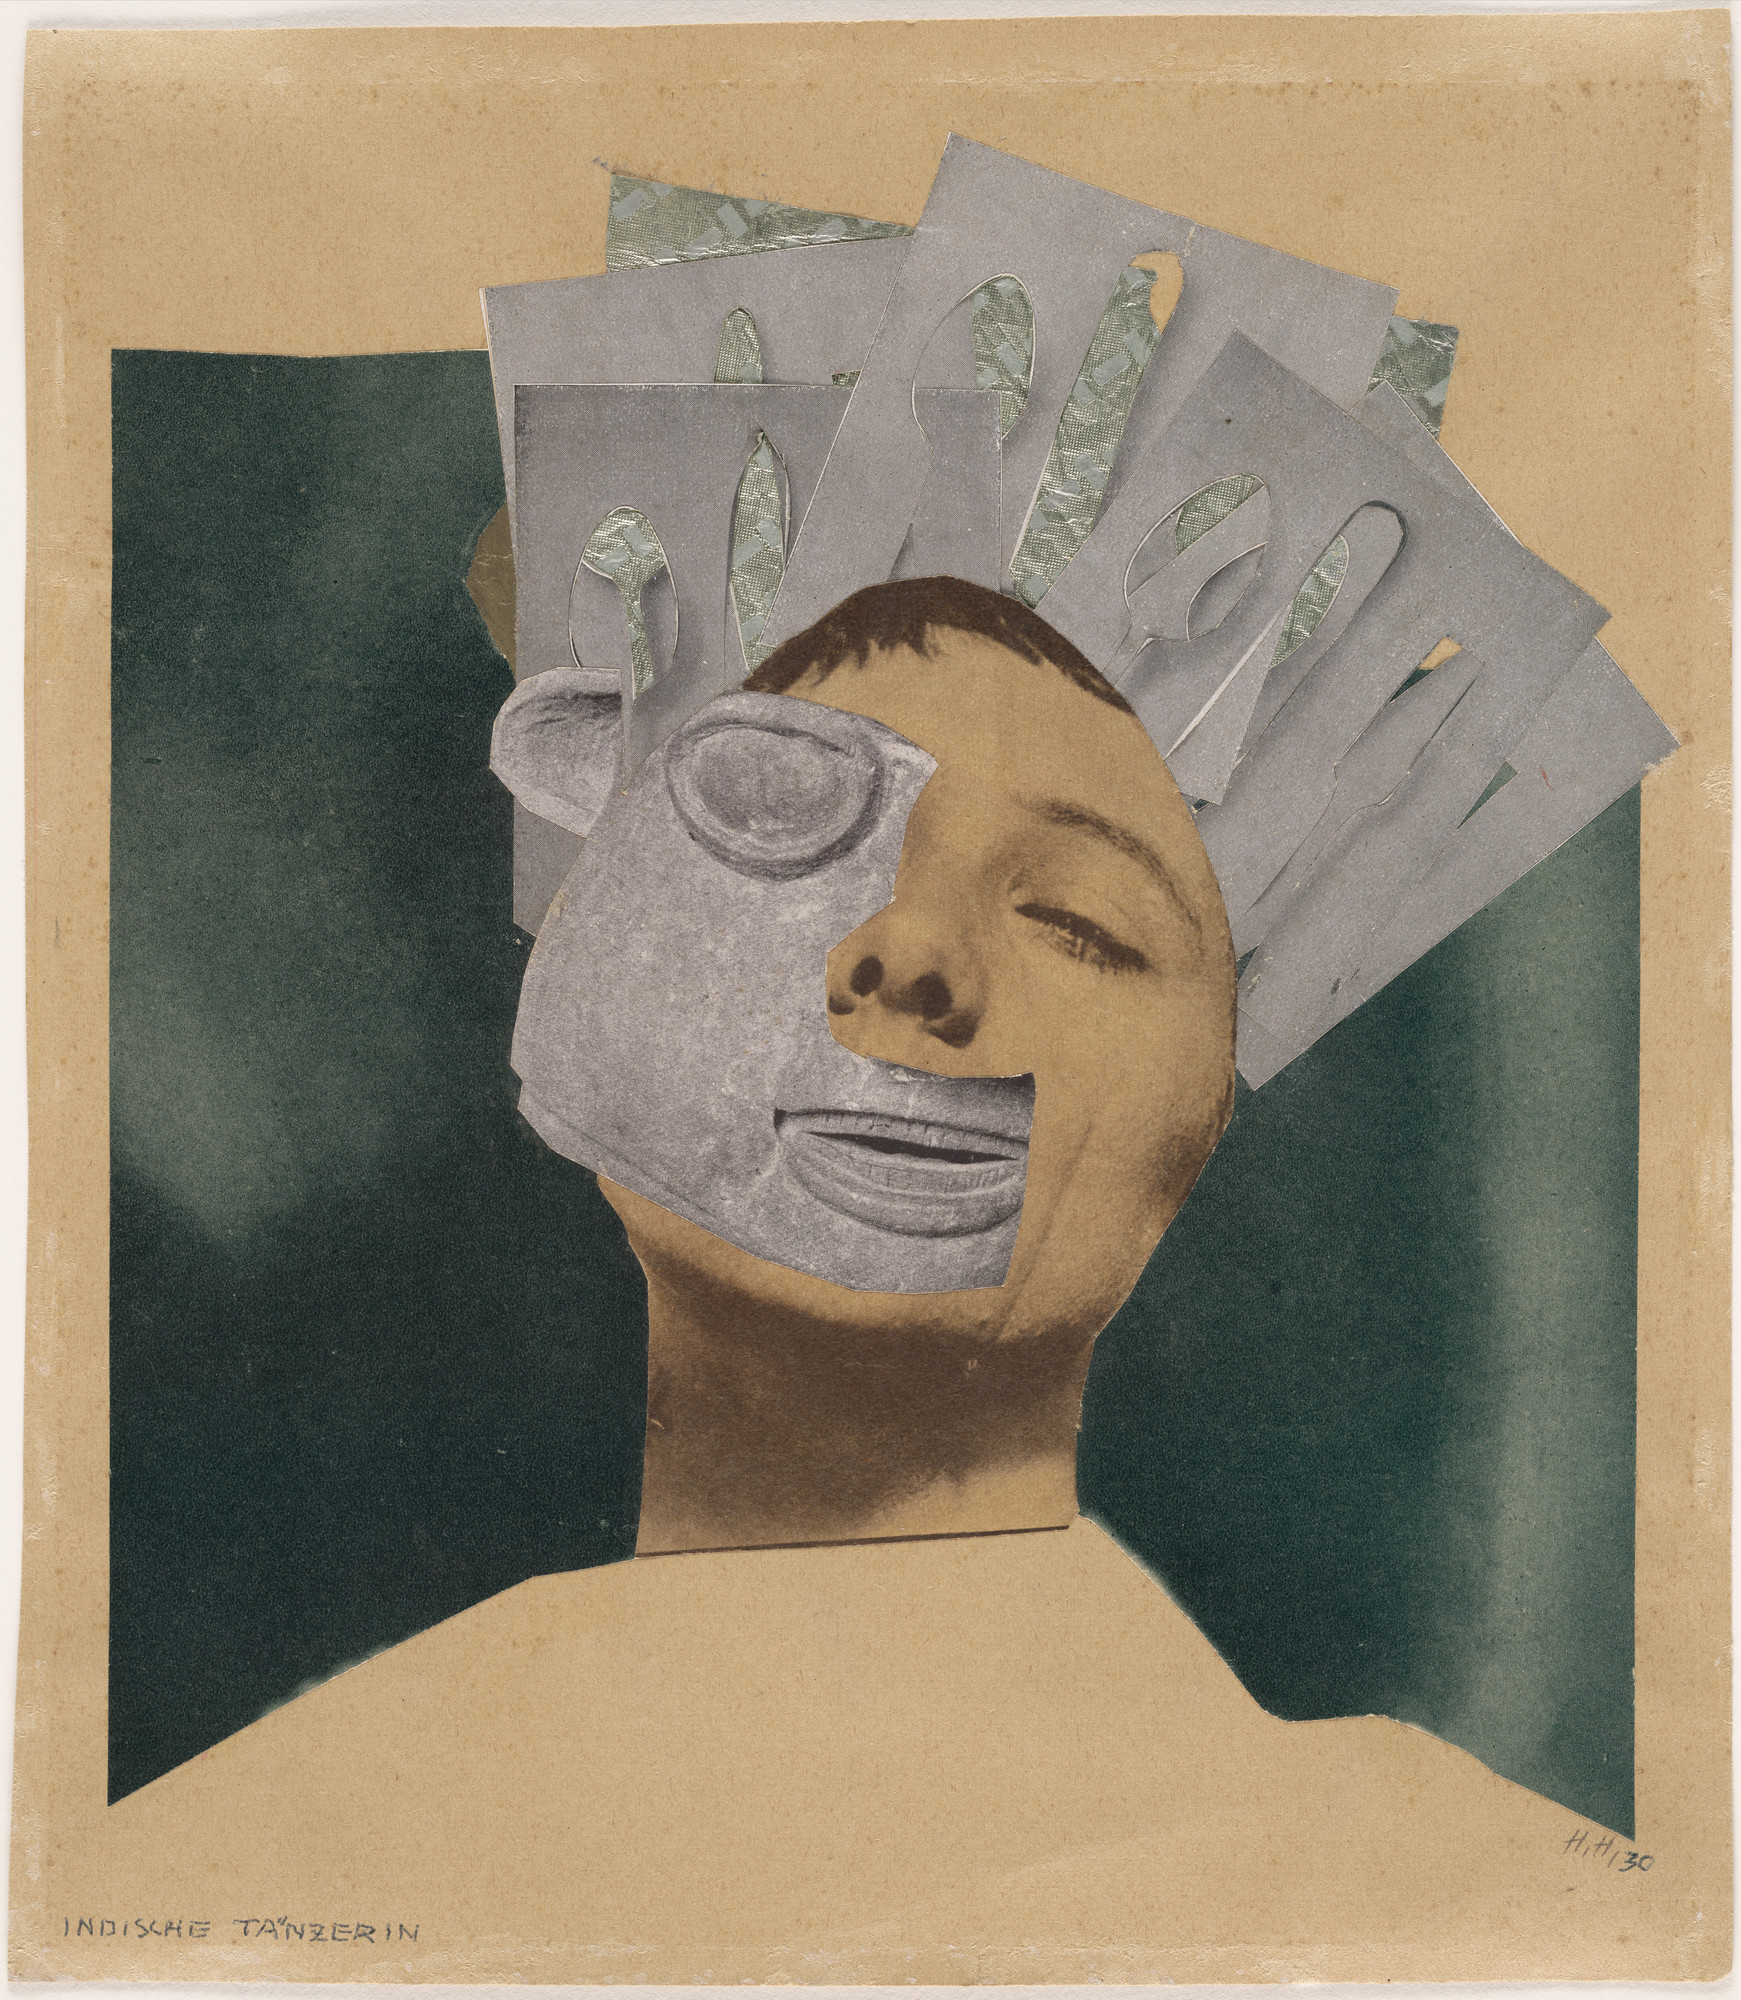 Hannah Höch: art's original punk